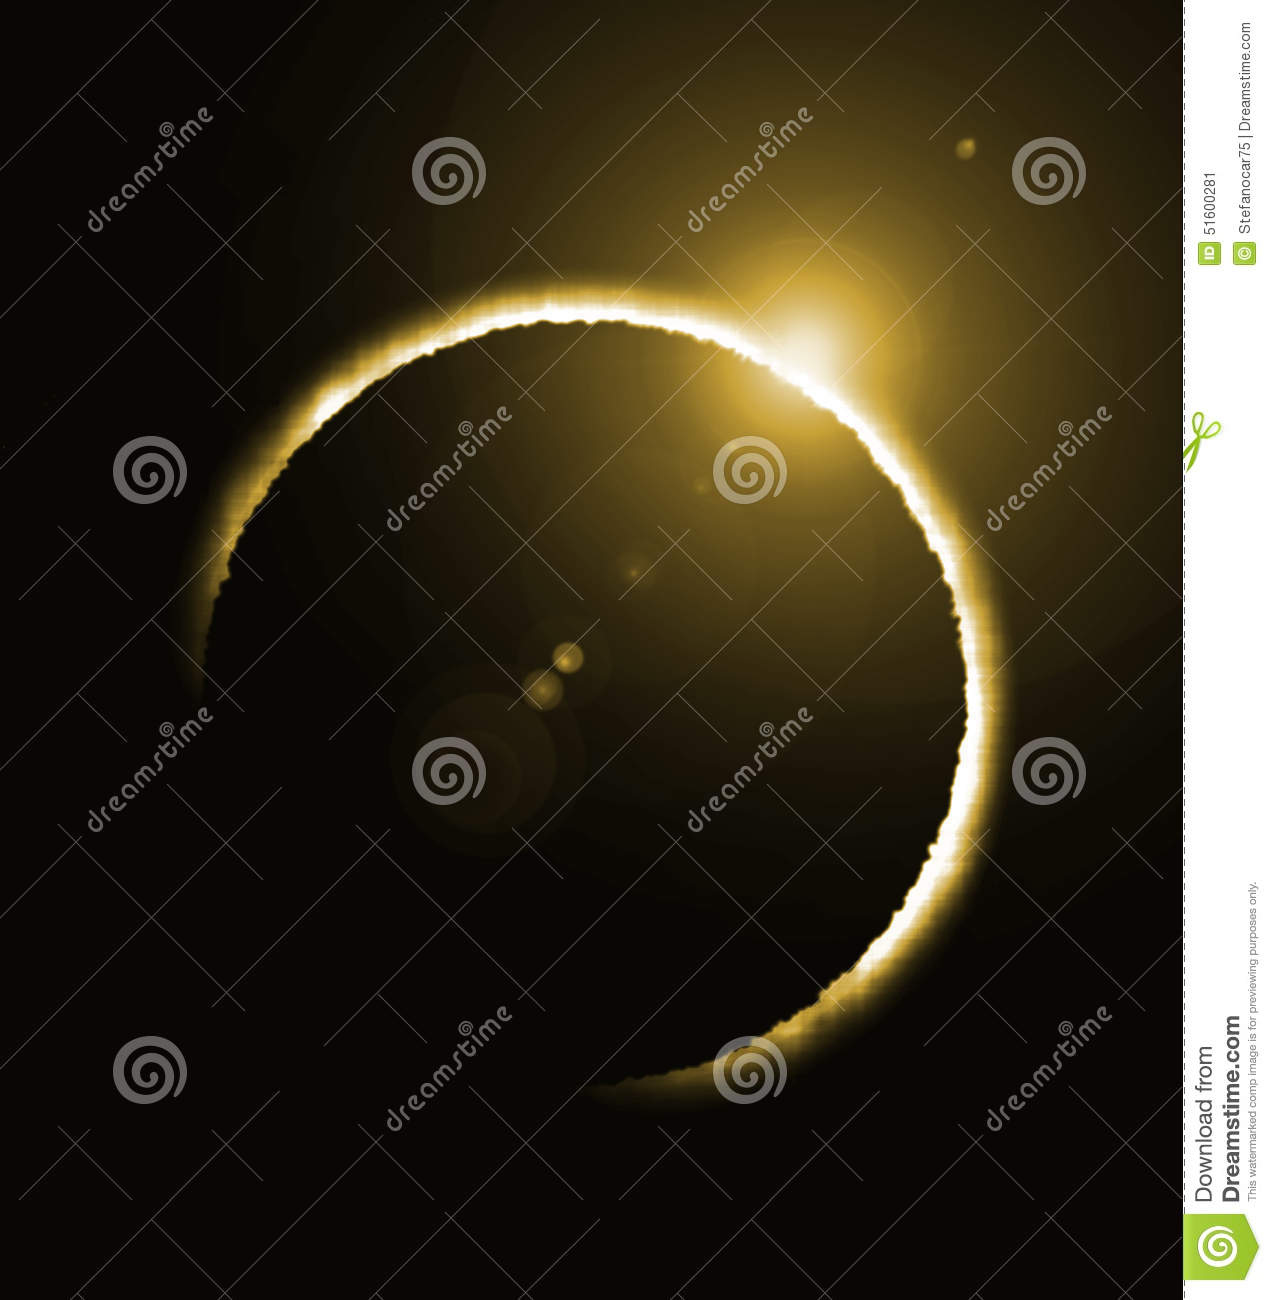 Rendering of a solar eclipse and a big flare